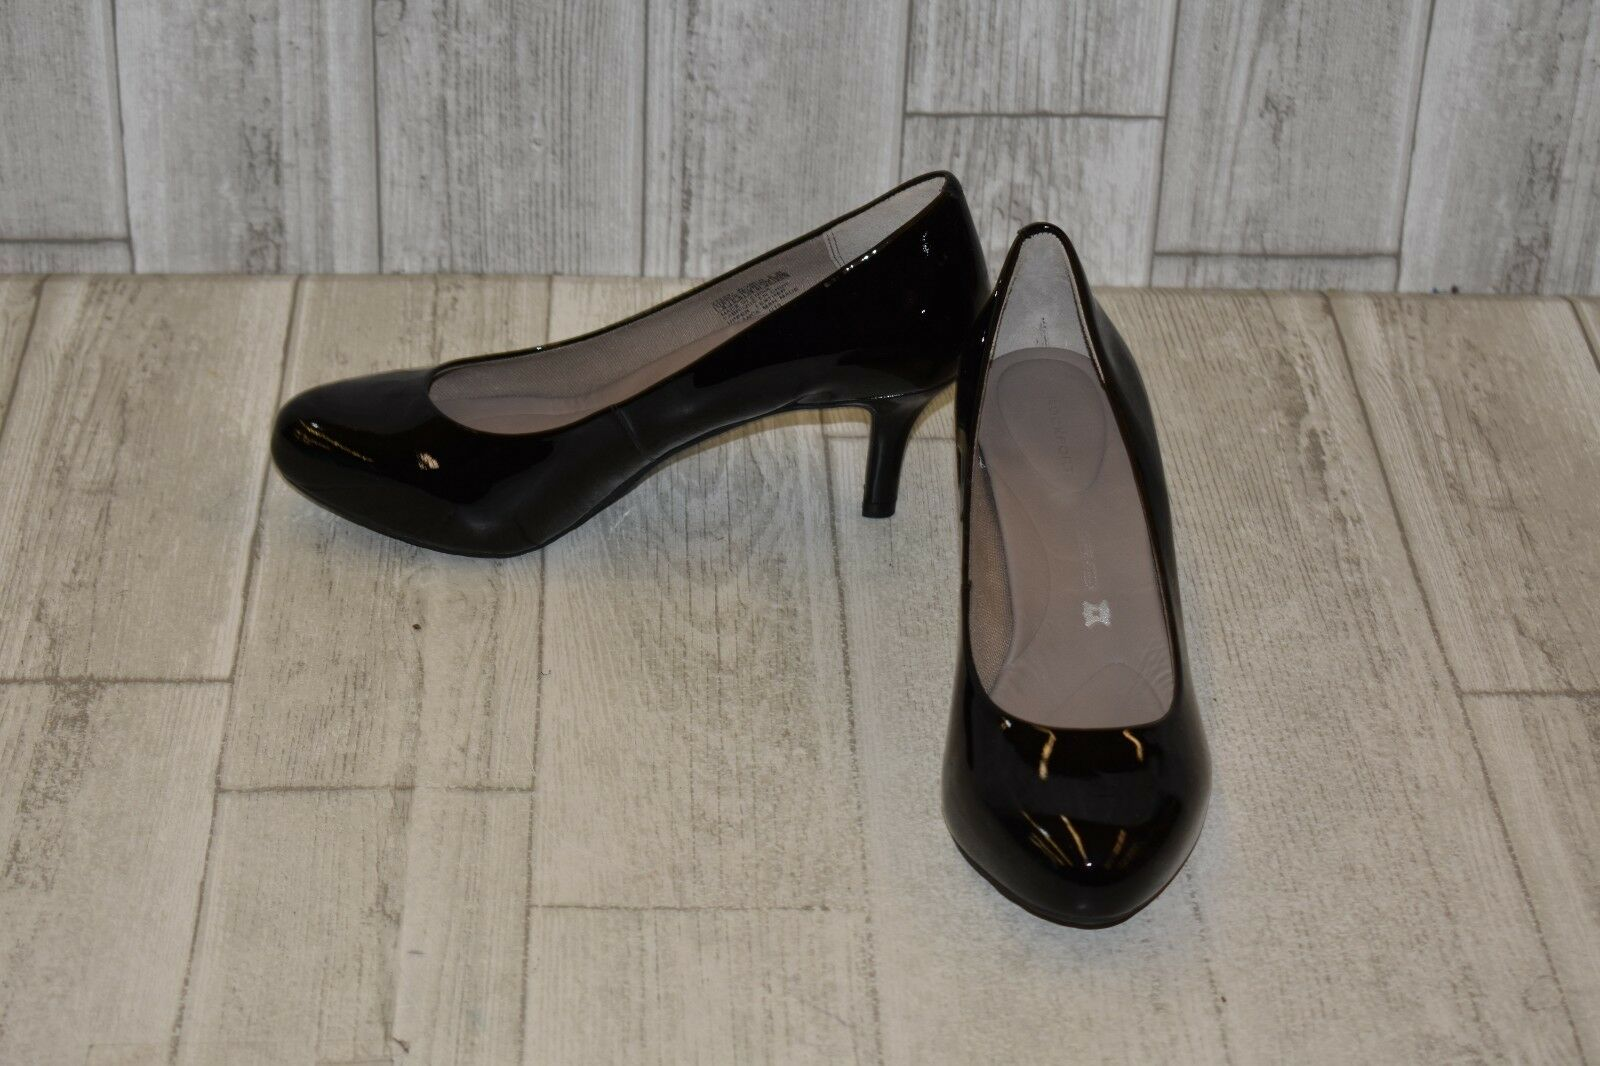 Rockport Seven to 7 Low Pump - Women's Size 8 W, Black